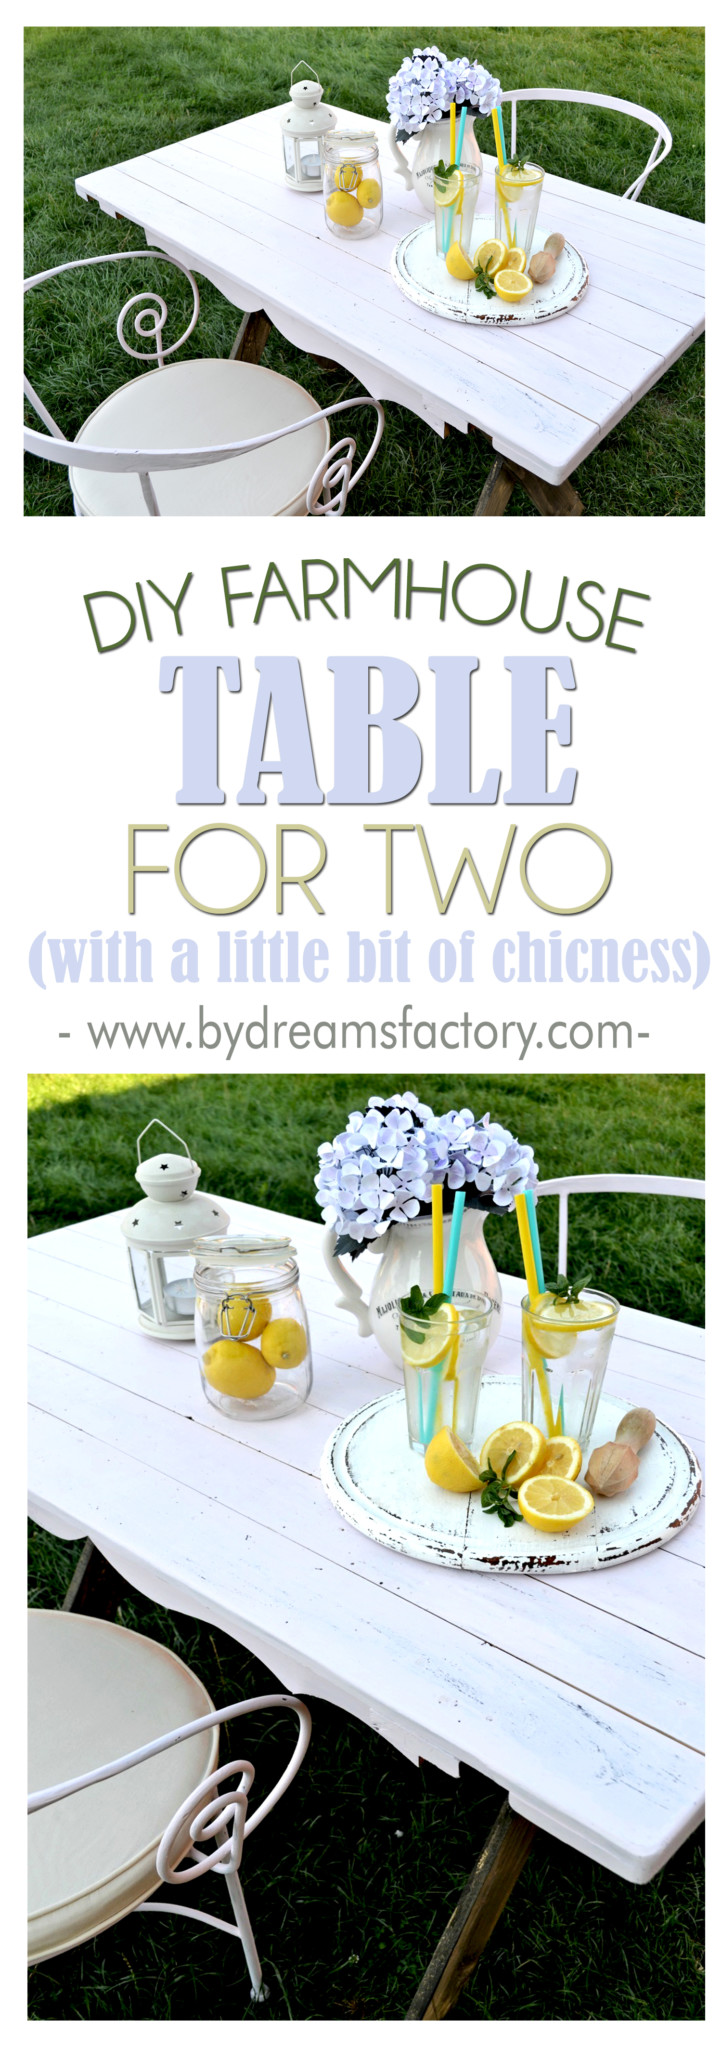 DIY farmhouse table for two - learn how to make a X leg farmhouse table from scratch, how to paint it and distress it, but also add a little bit of chicness to make it special (and even use old pallets wood in the process) - Dreams Factory